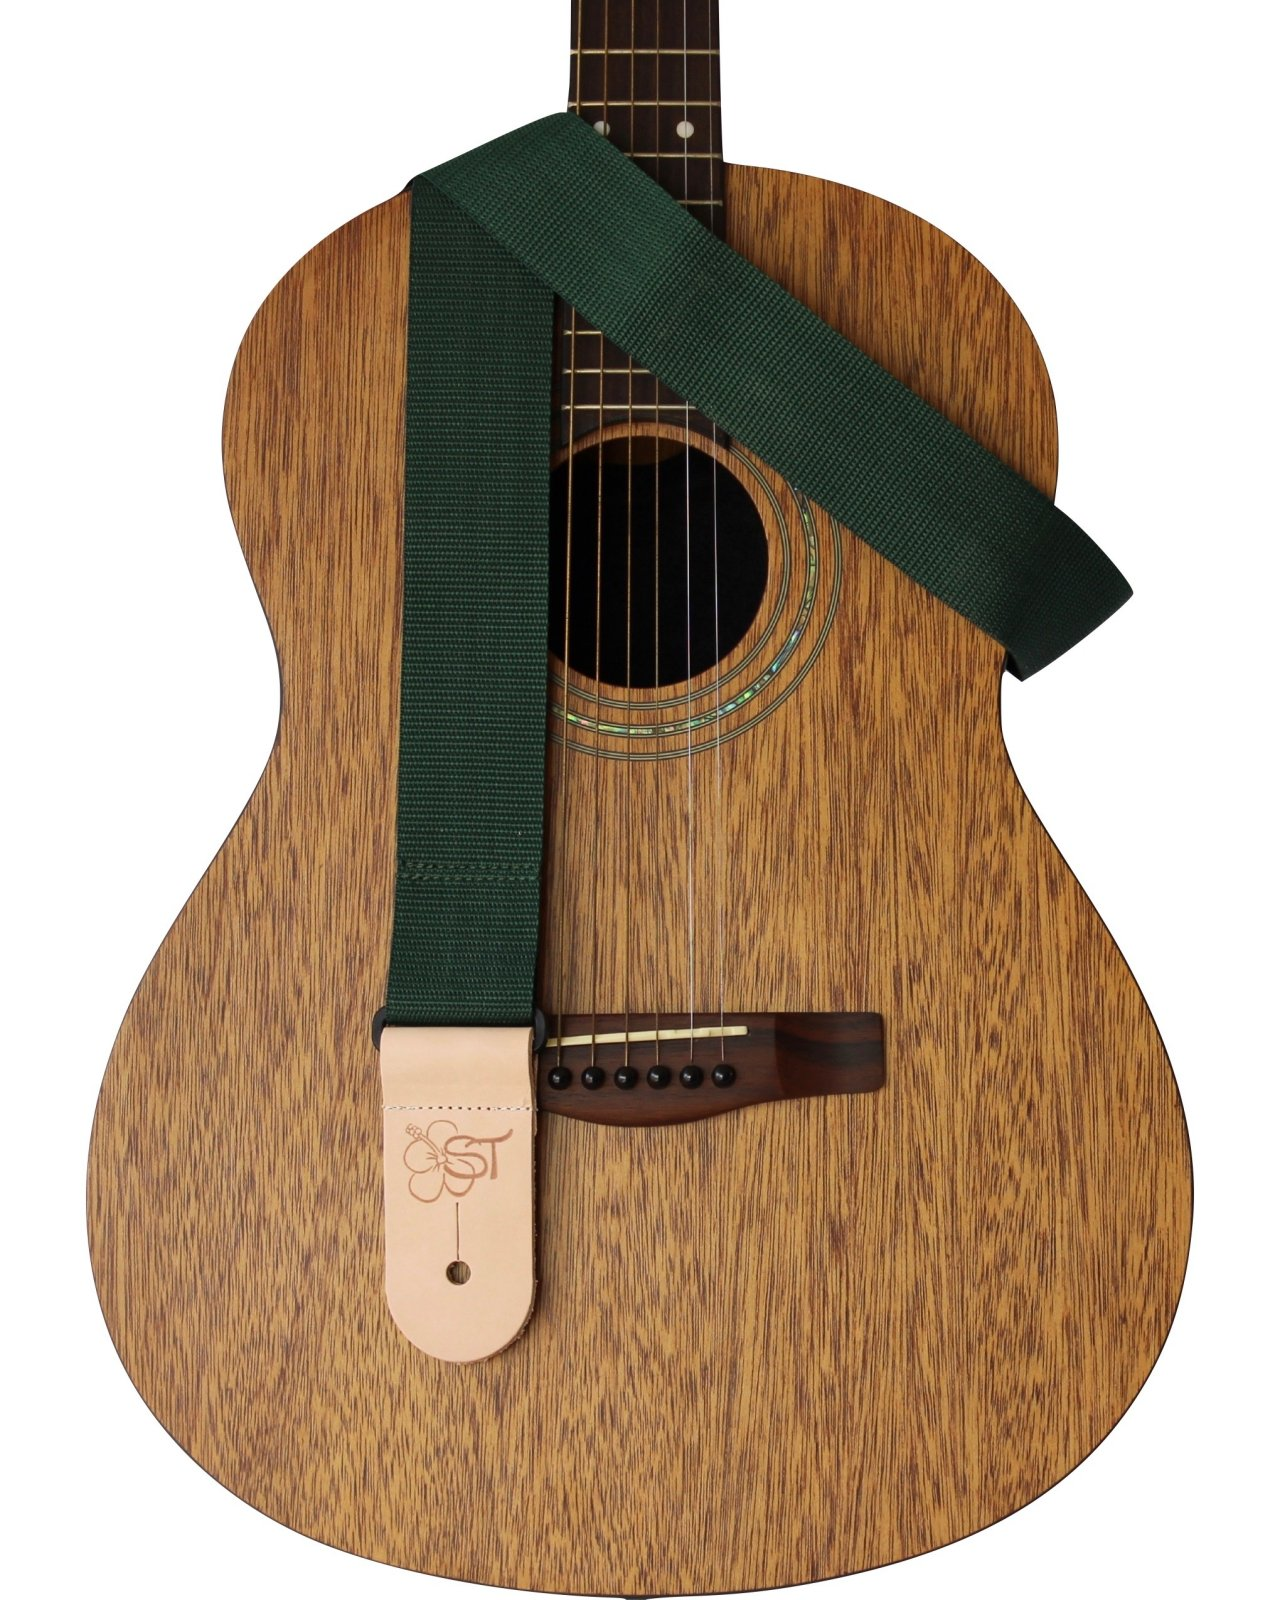 Sherrin's Threads 2 Guitar Strap w/Leather Ends - Green - Made in USA